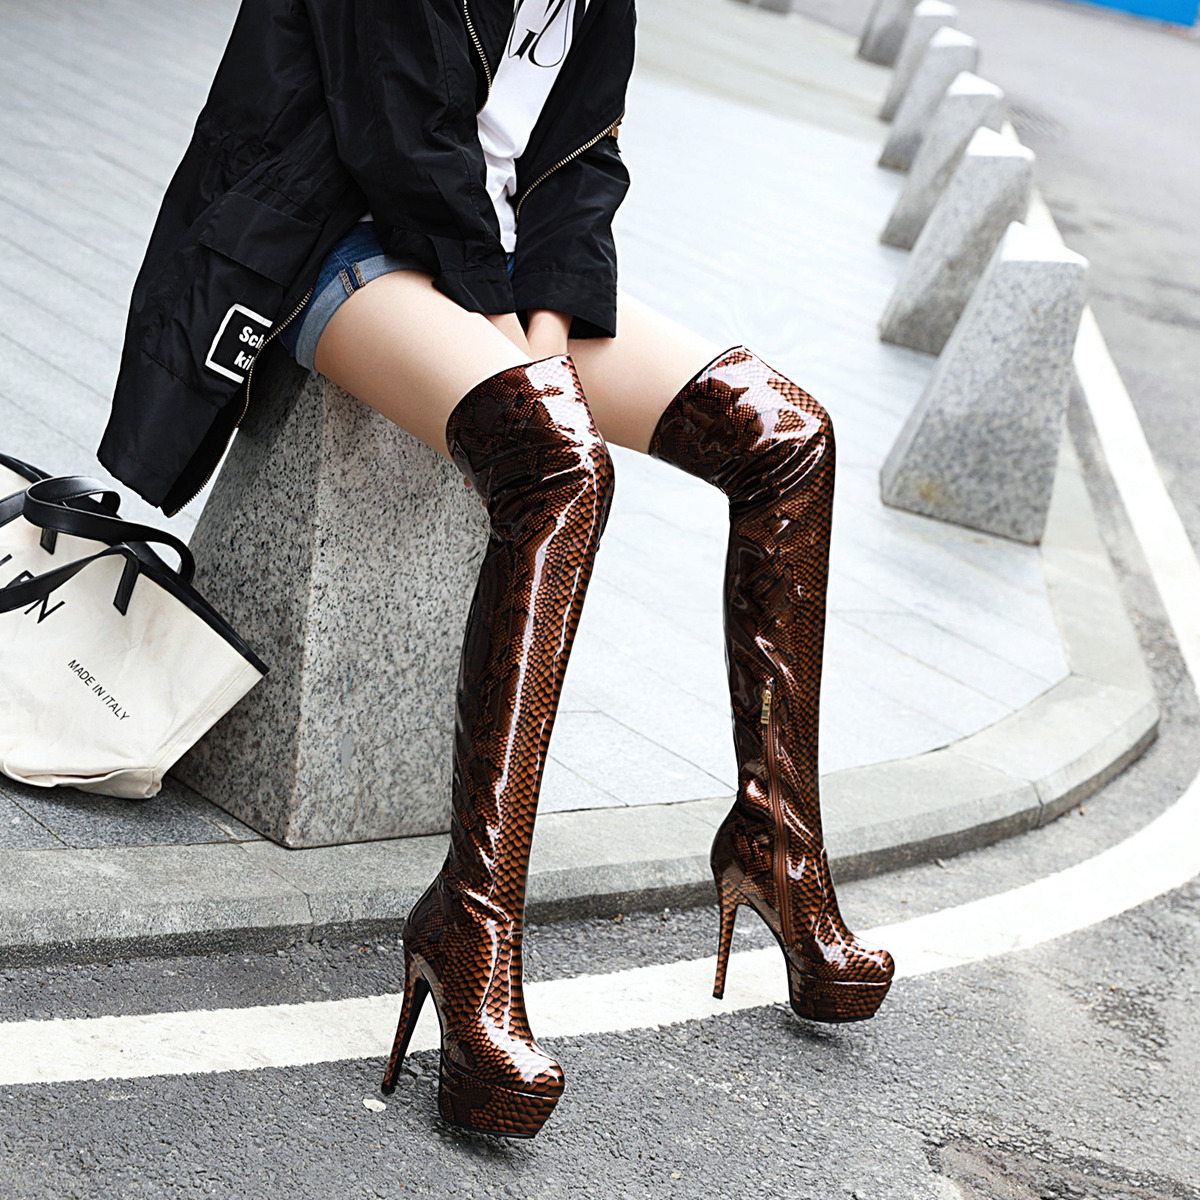 Women over-the-knee Boots plus size 22-28cm length patent leather long boots Snakeskin pattern super high heel platform shoes